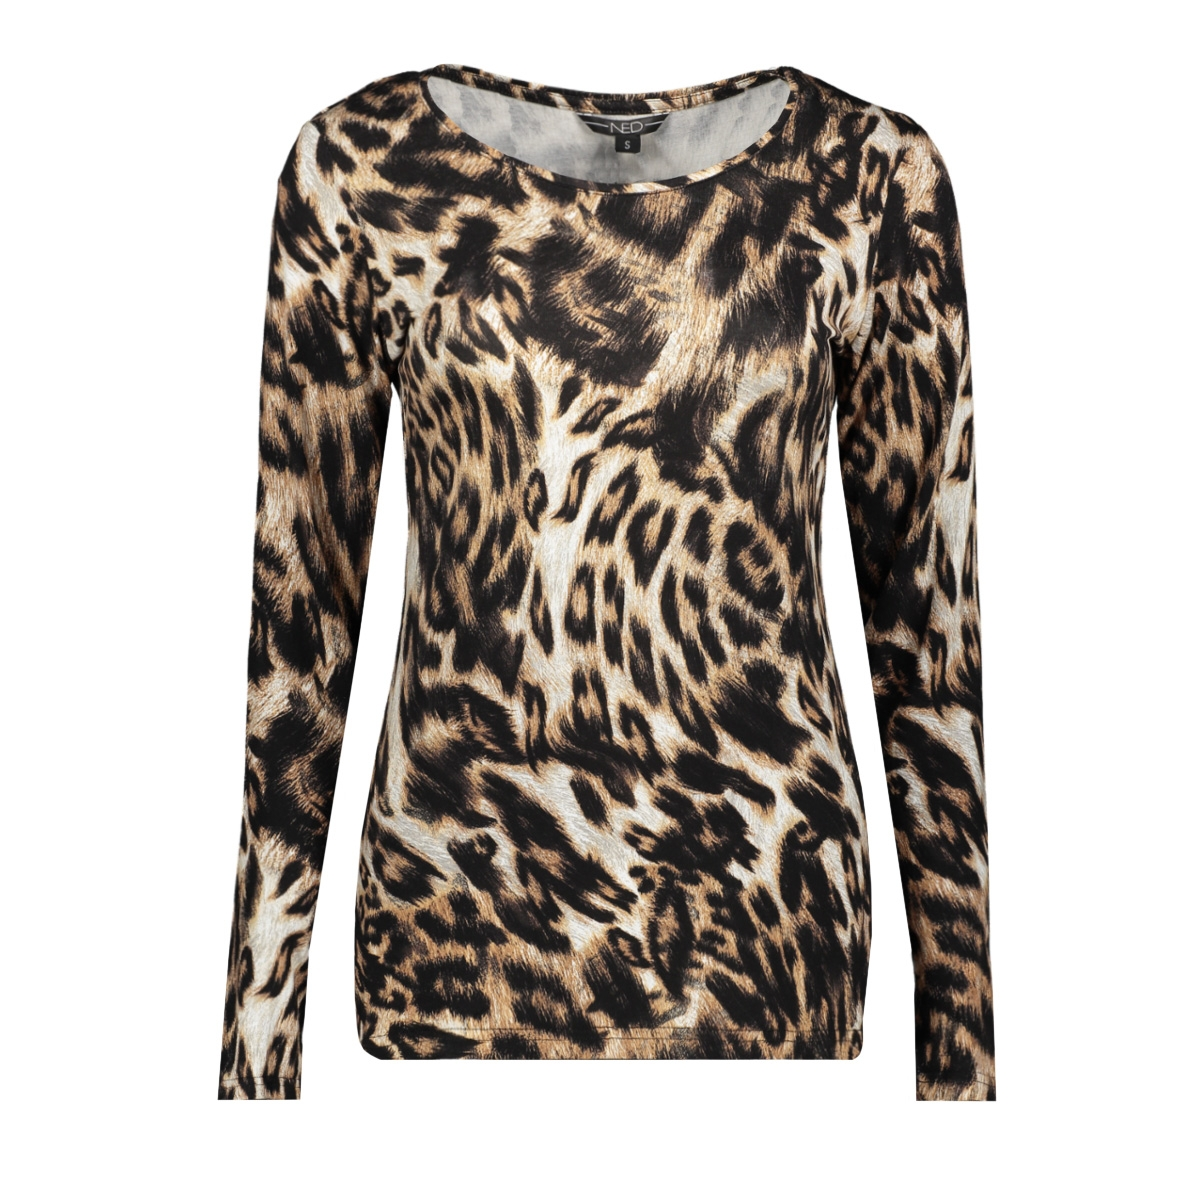 xps19w1 x730 02 lean ls tiger ned t-shirt 601 taupe